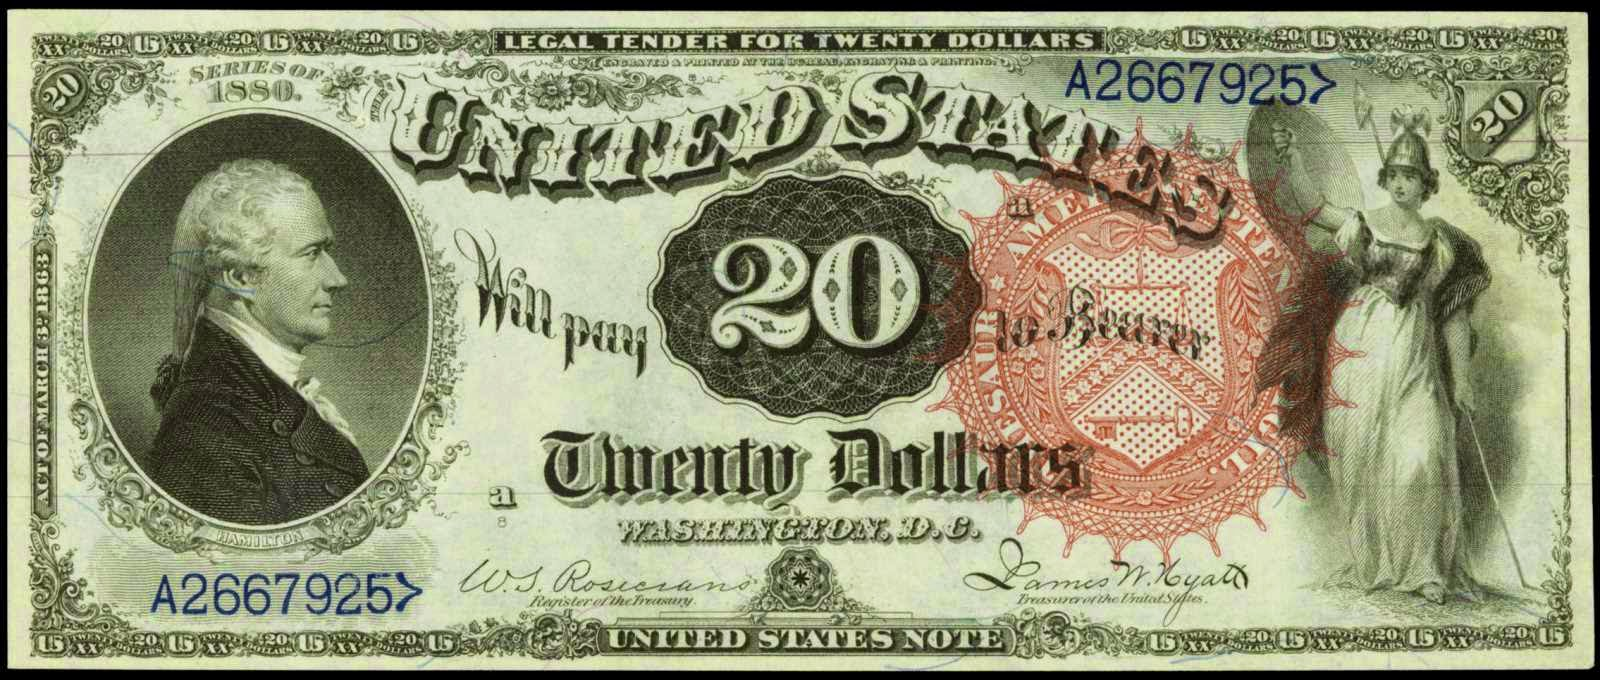 Billet de banque de 20 dollars US portant la mention Legal tender